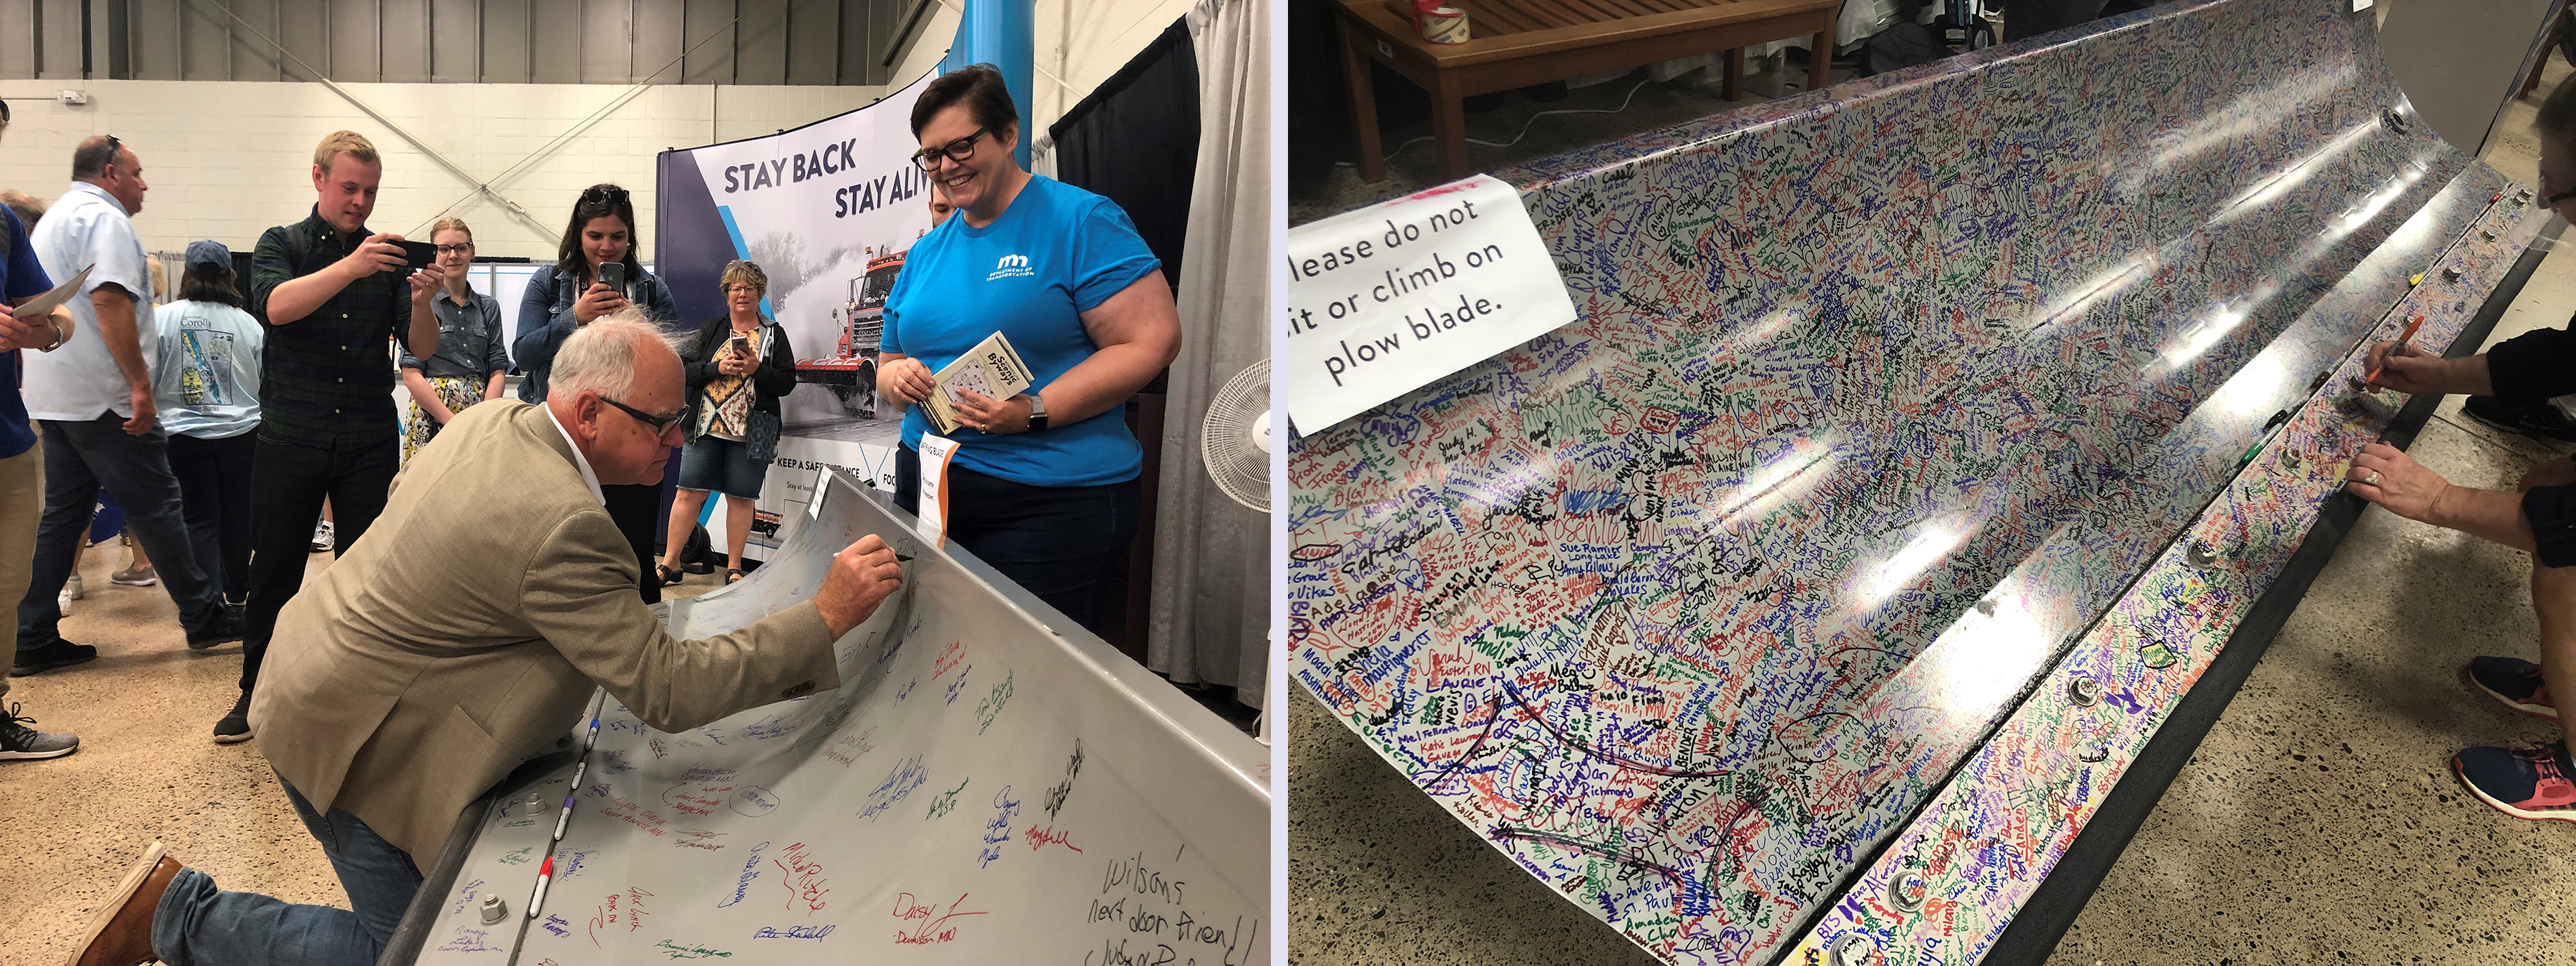 At left, Gov. Tim Walz signs the plow blade at the Minnesota State Fair, at right, a close-up photo of the hundreds of signatures, in different colors, left on a different blade.